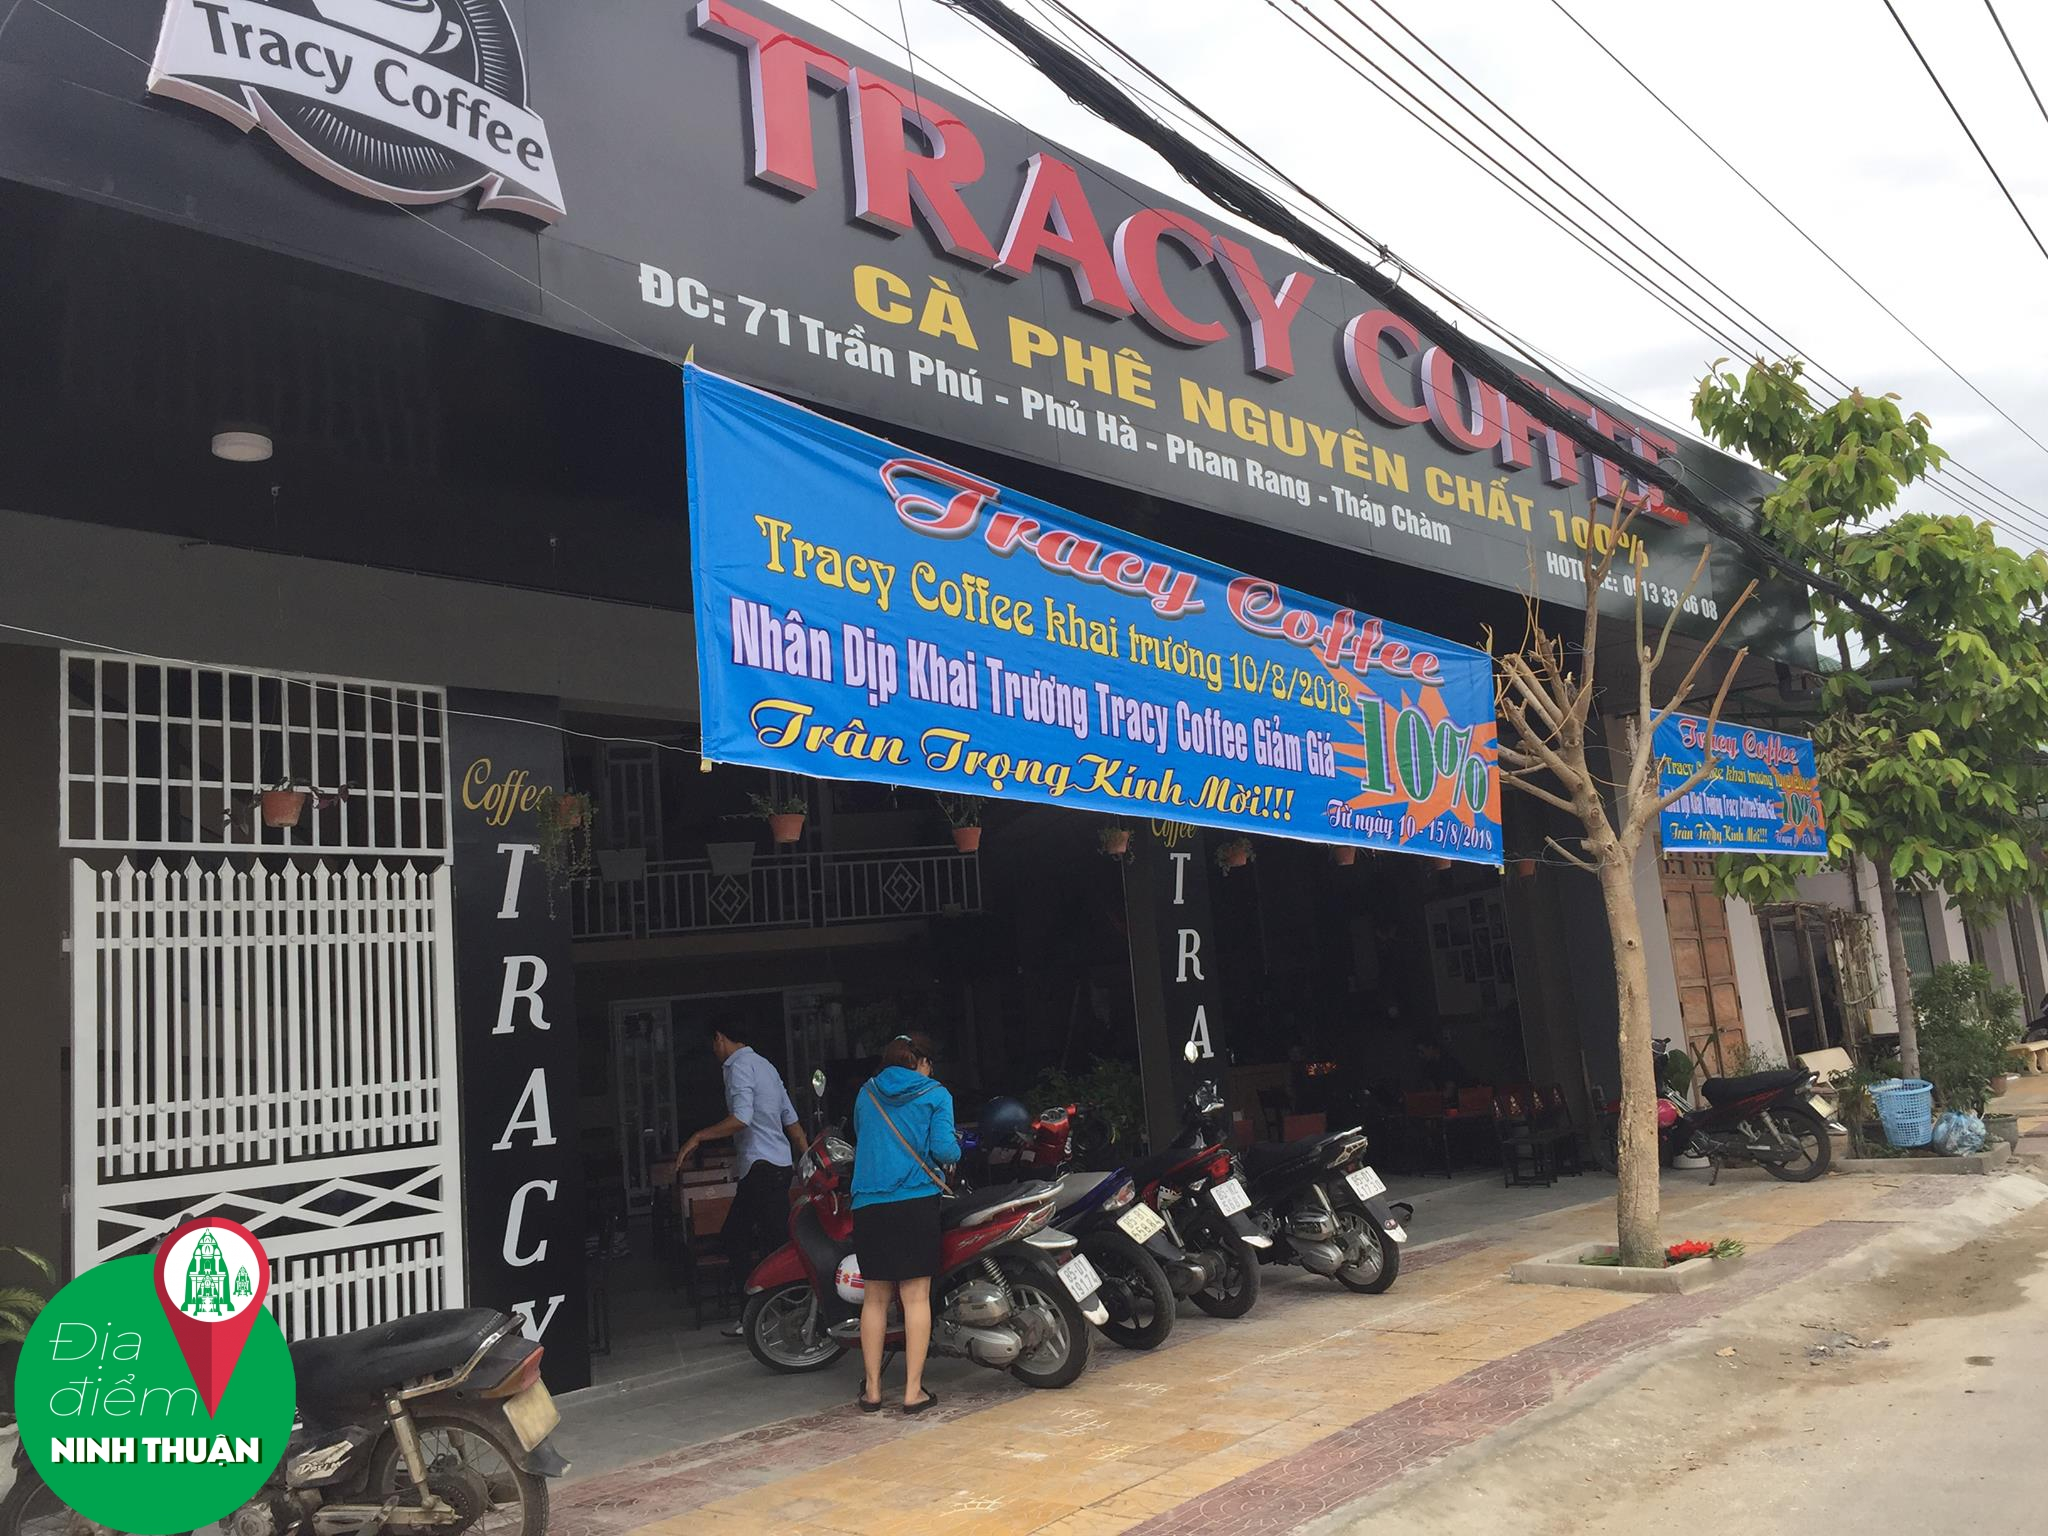 Cafe Sạch Tracy